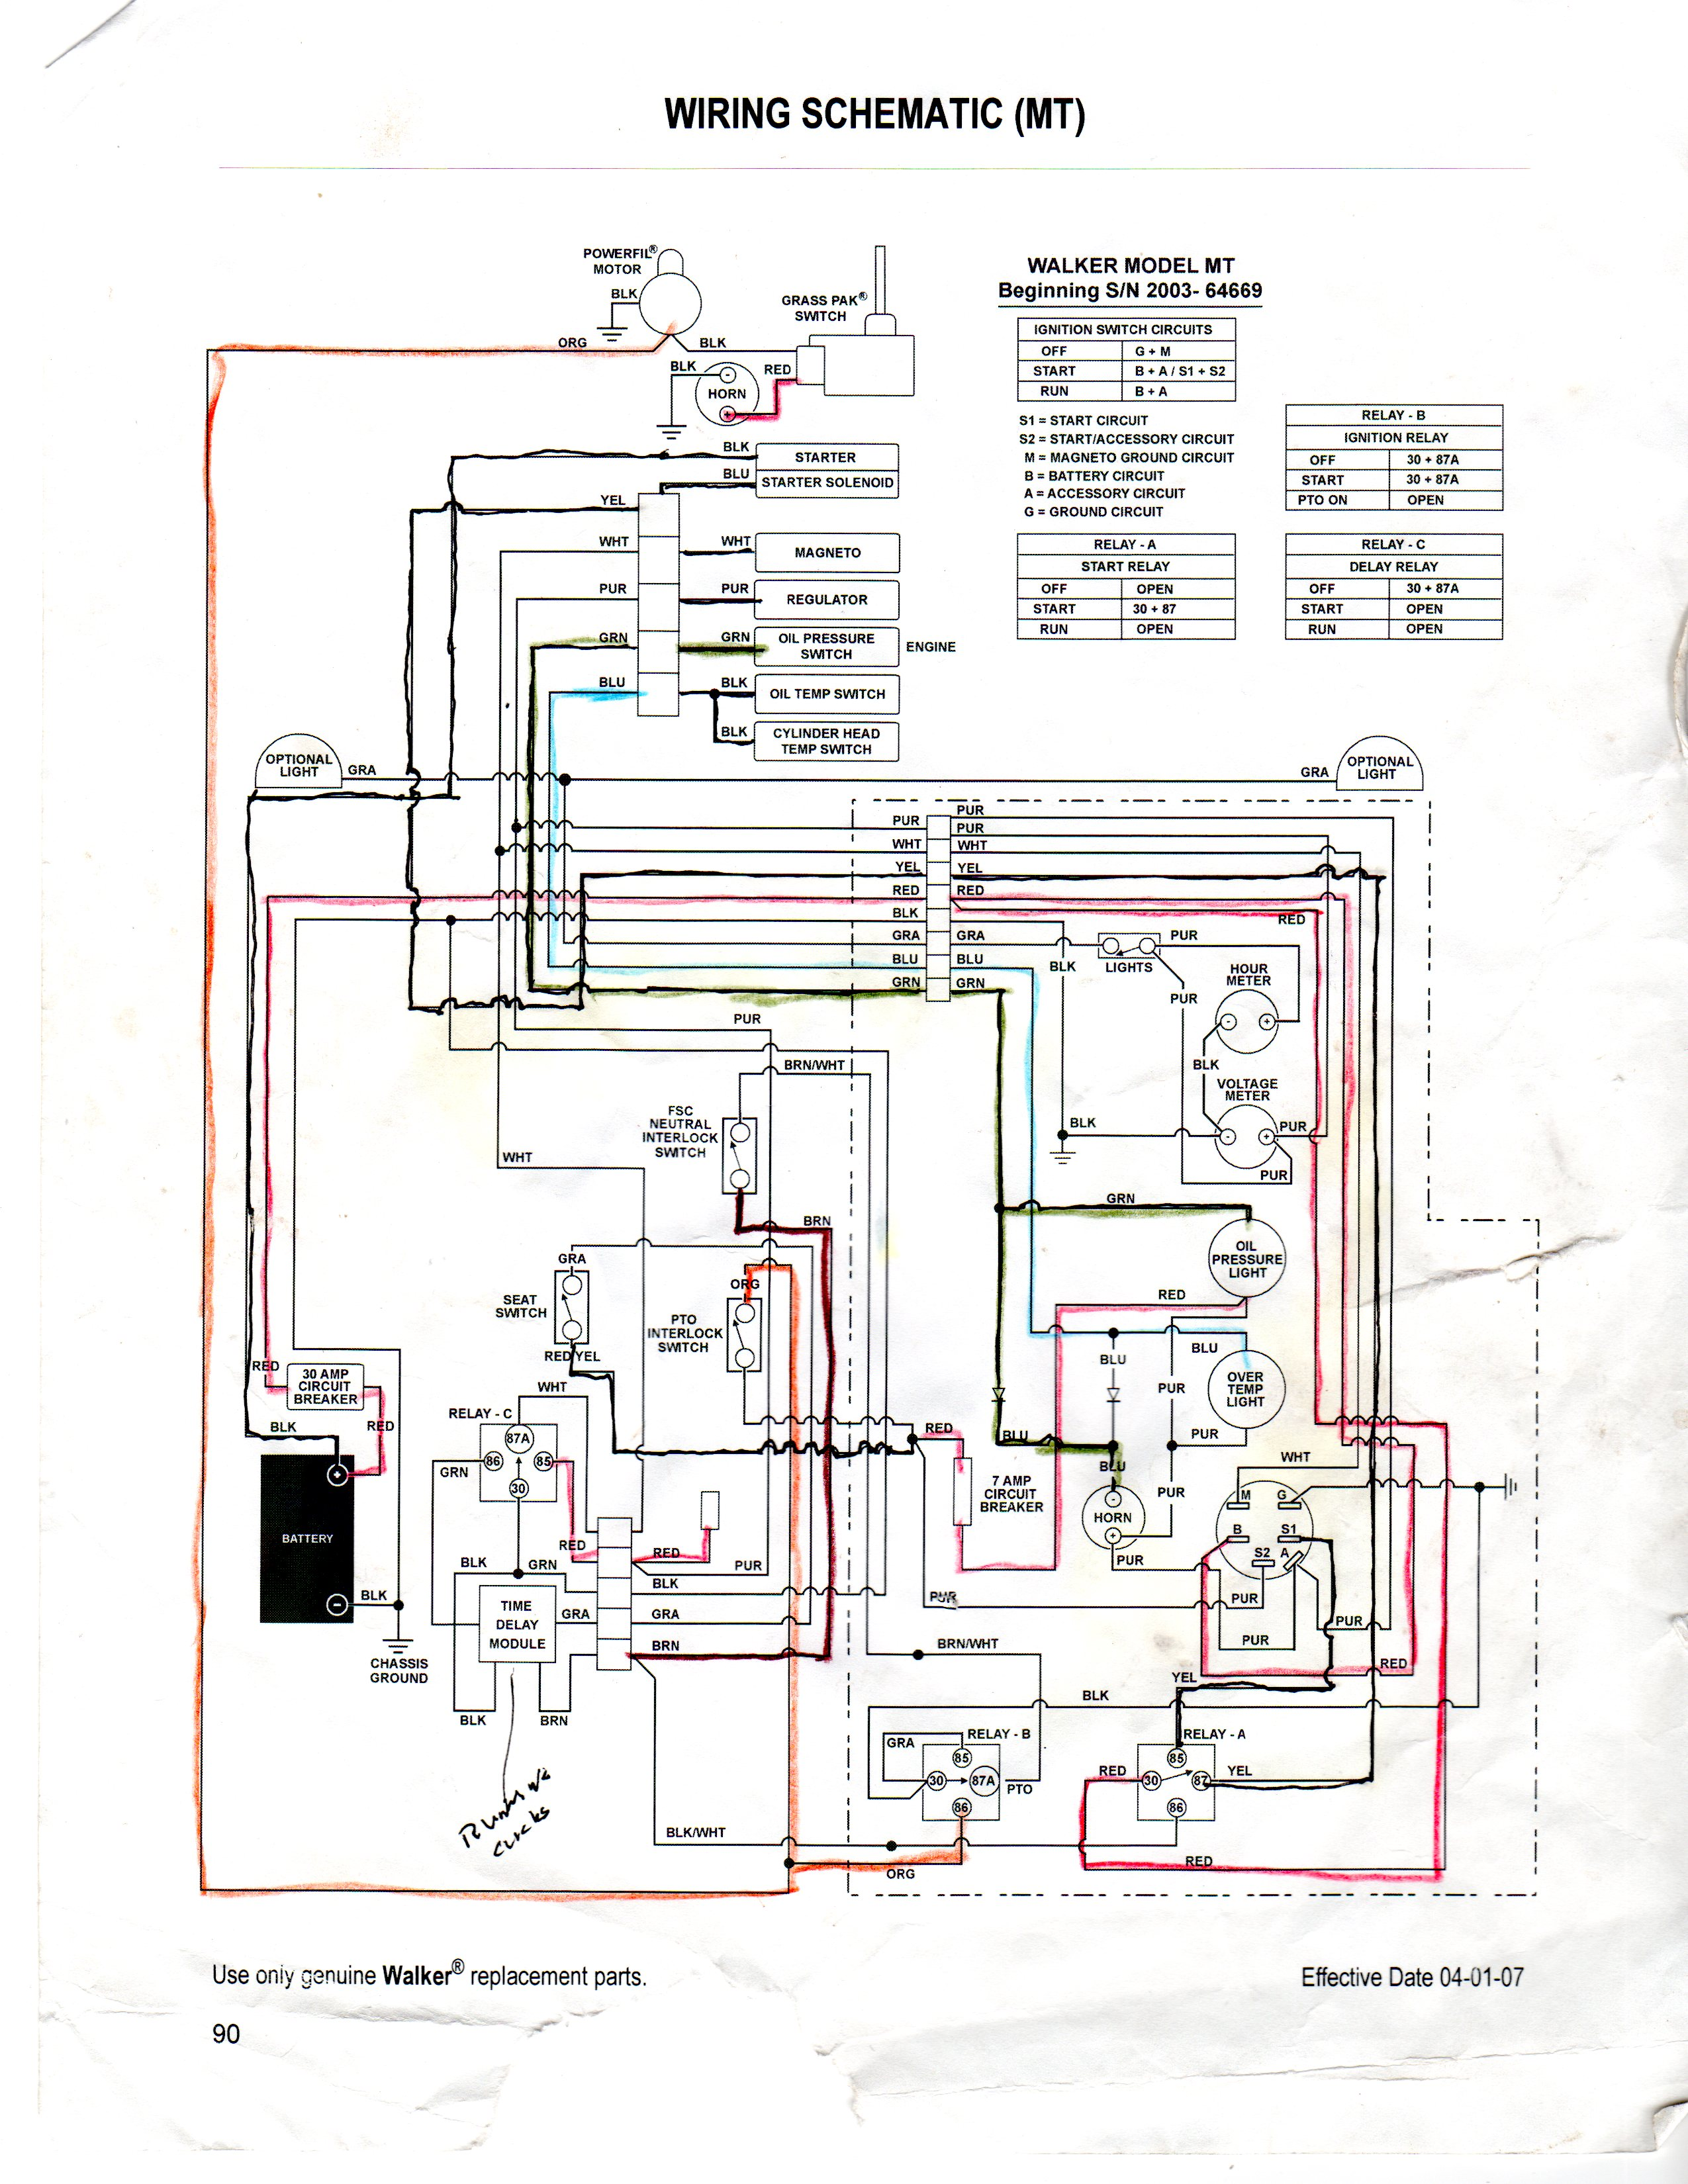 [DIAGRAM_4FR]  5915A59 Wiring Diagram For Cub Cadet Ltx 1046 | Wiring Diagram | Wiring  Library | Cub Cadet Ltx 1045 Wiring Diagram |  | Wiring Library